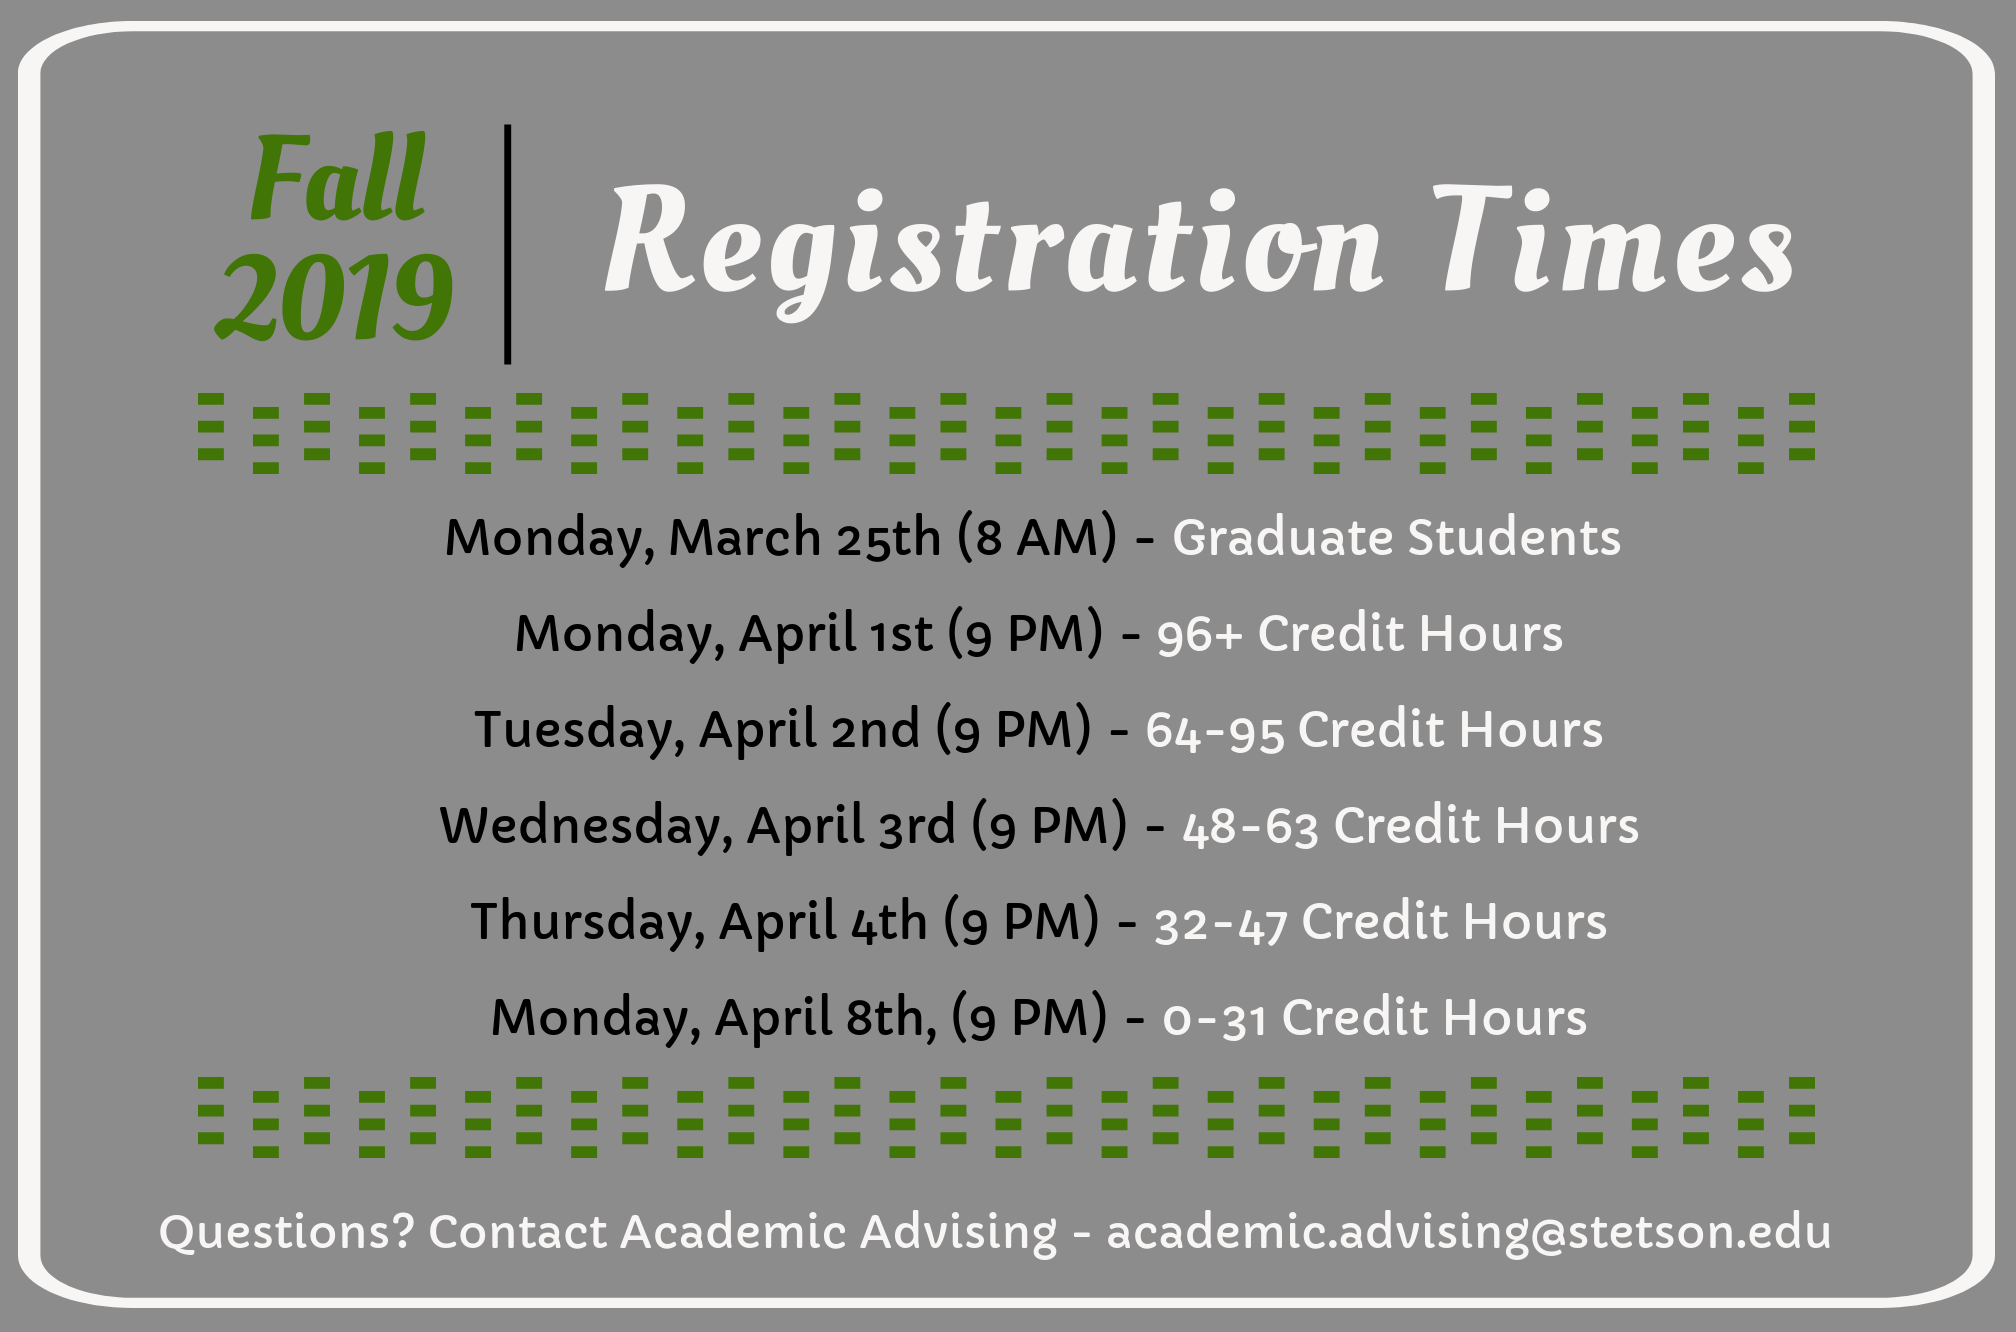 Fall 2019 Registration Times. Monday, March 25th (8 AM) Graduate Students. Monday, April 1st (9 PM) 96+ Credit Hours. Tuesday, April 2nd (9 PM) 64-95 Credit Hours. Wednesday, April 3rd (9 PM) 48-63 Credit Hours. Thursday, April 4th (9 PM) 32-47 Credit Hours. Monday, April 8th (9 PM) 0-31 Credit Hours.